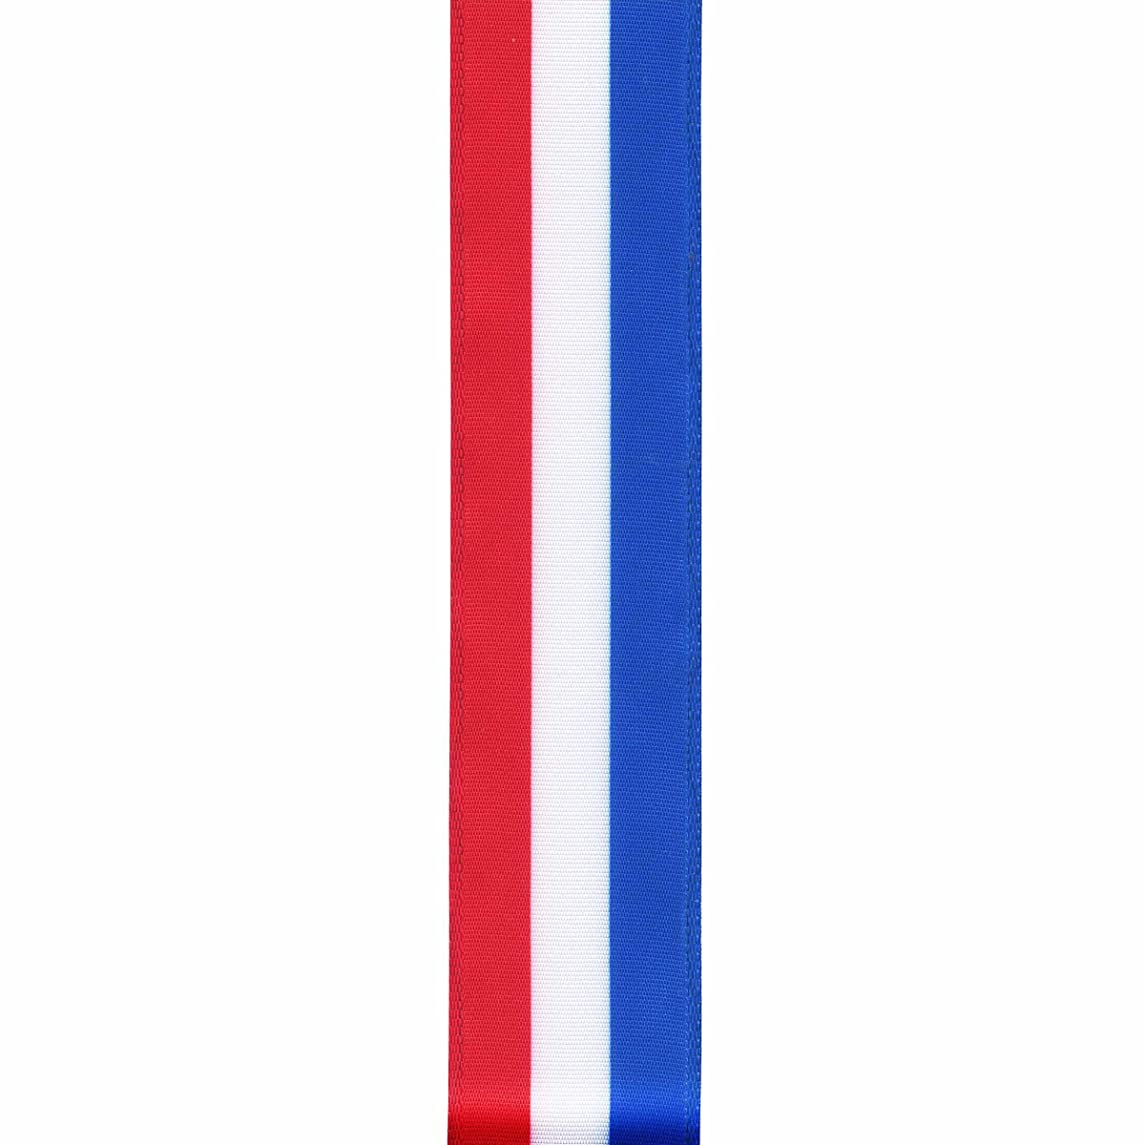 Offray Wired Edge Uncle Sam Craft Ribbon, 1 1/2-Inch x 9-Feet, Multi